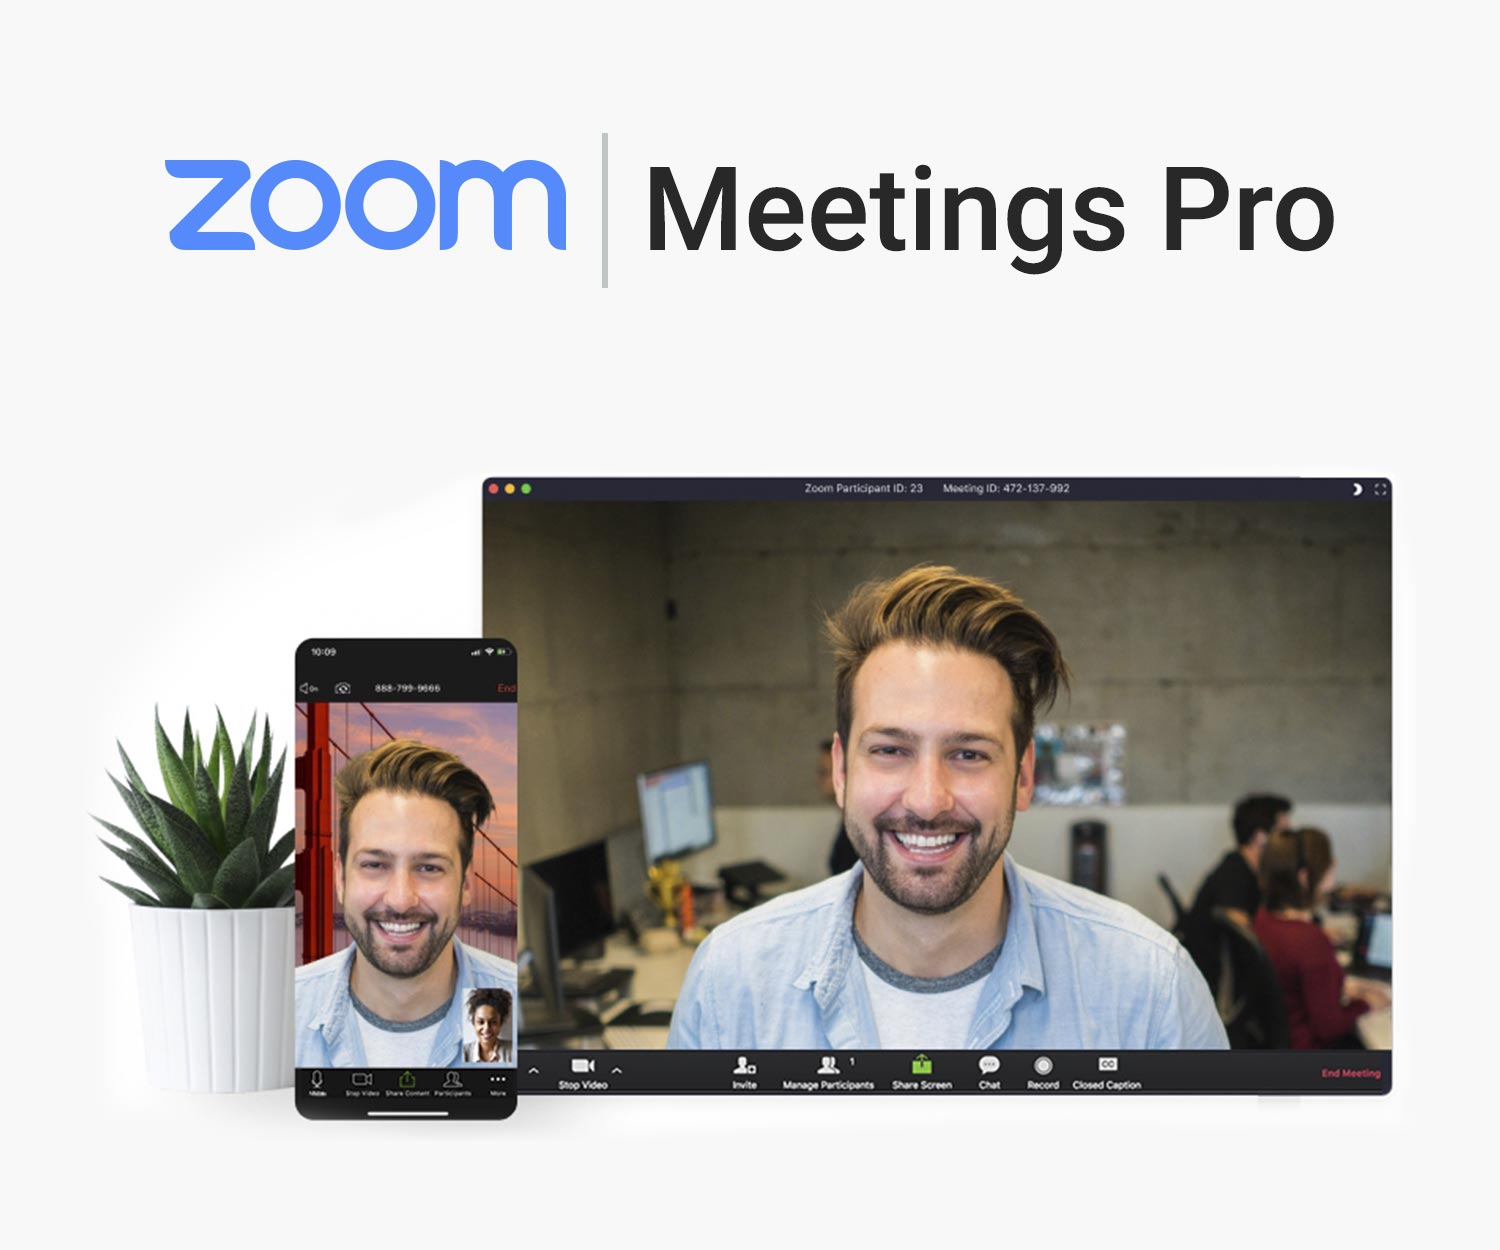 Zoom Meetings Pro